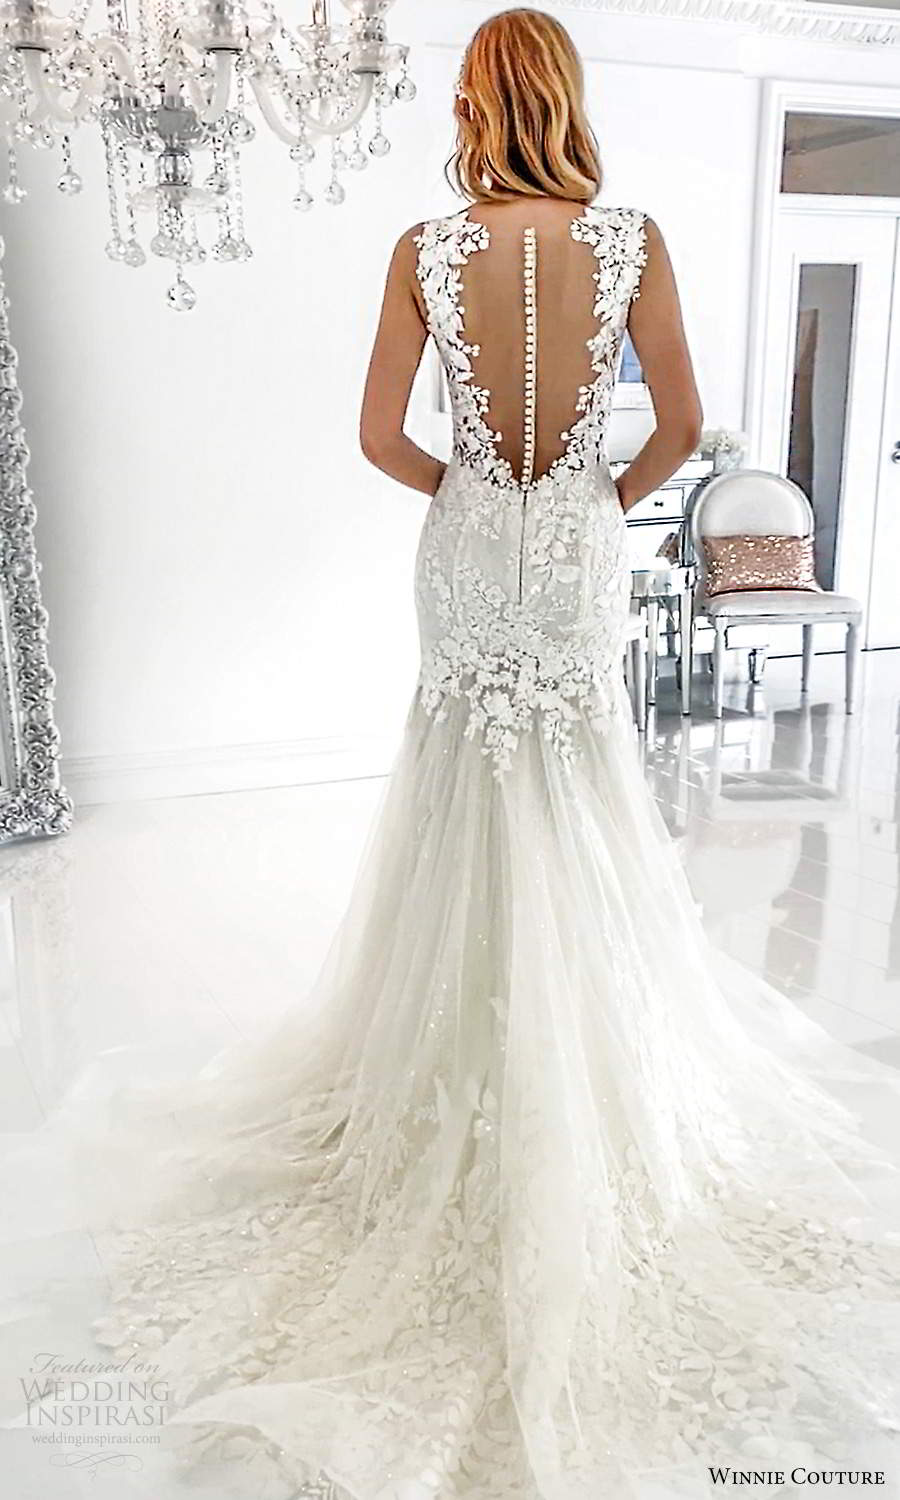 winnie couture 2021 bridal sleeveless thick straps plunging v neckline fully embellished lace fit flare mermaid wedding dress chapel train sheer back (4) bv